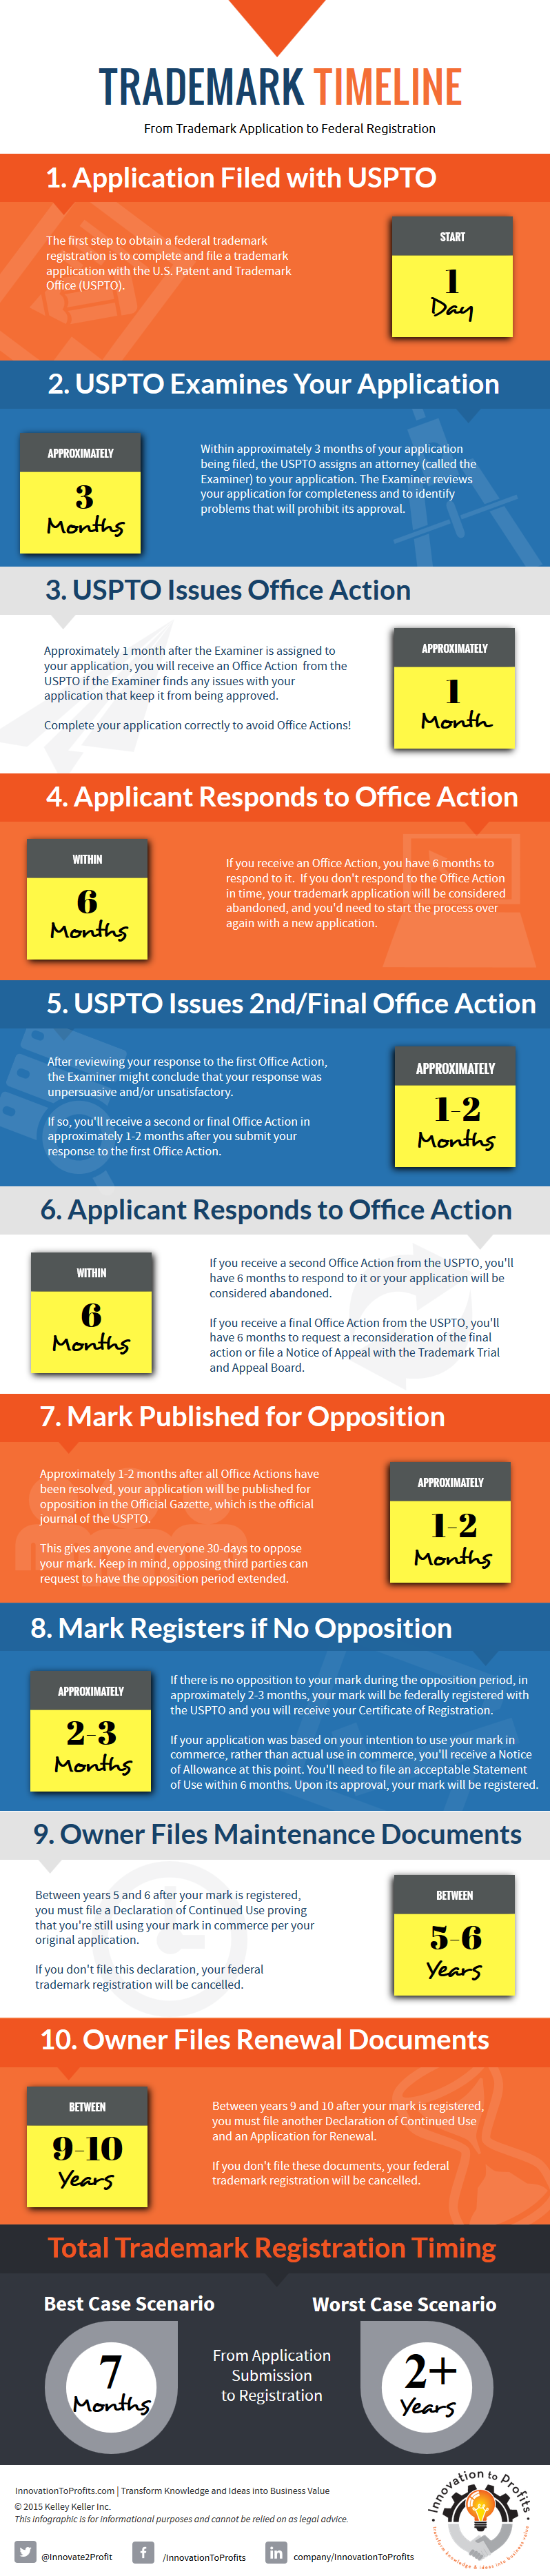 Trademark Timeline Infographic from Innovation to Profits